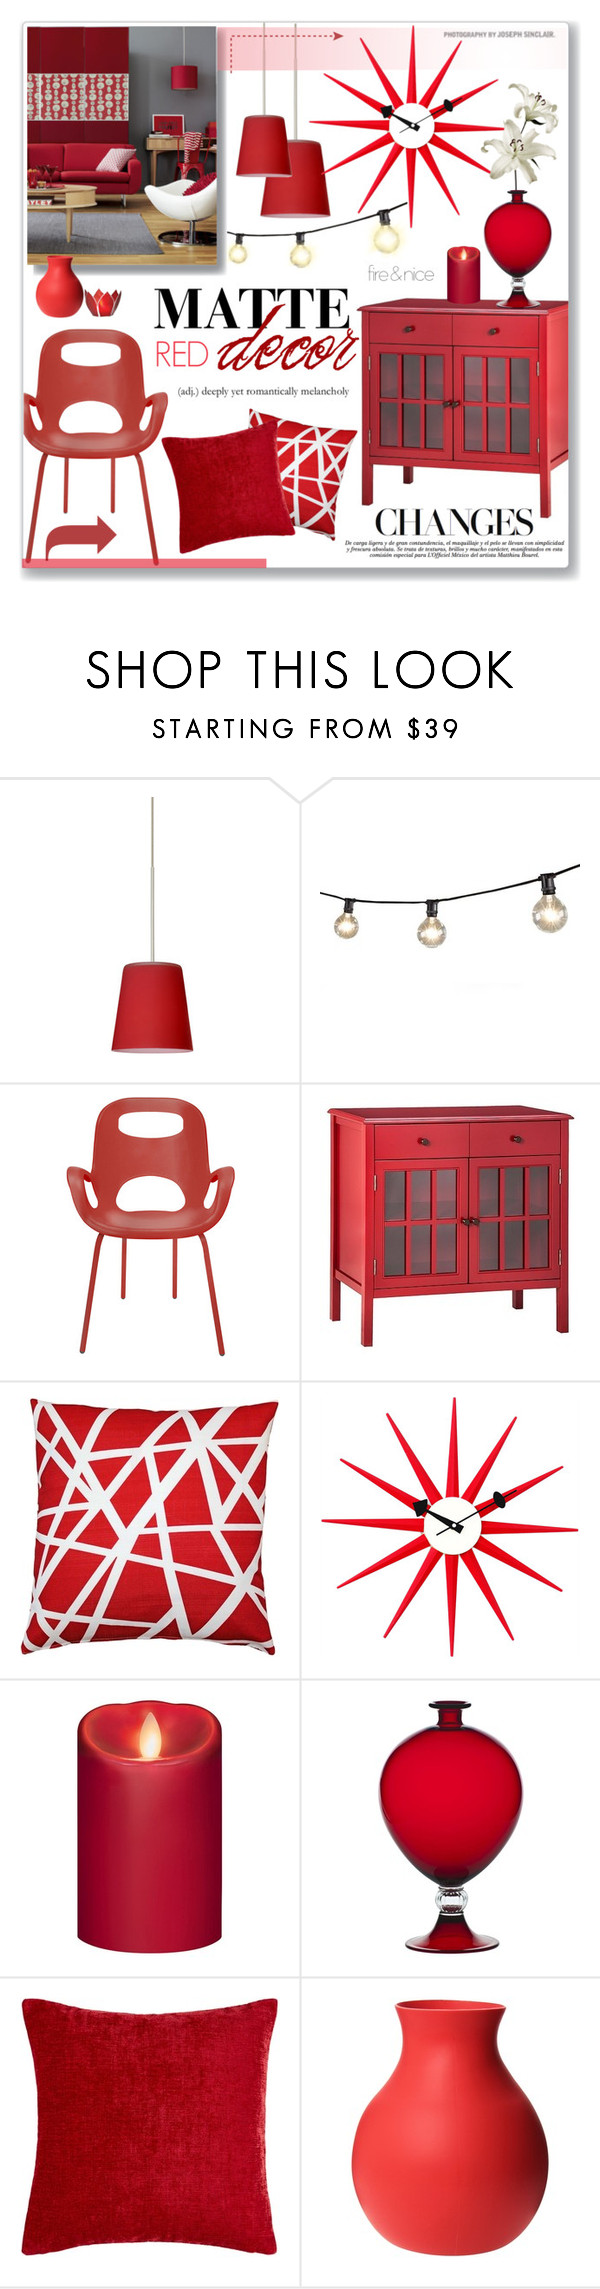 """""""Matte Red Home"""" by alexandrazeres ❤ liked on Polyvore featuring interior, interiors, interior design, home, home decor, interior decorating, Besa Lighting, Bulbrite, Umbra and Threshold"""